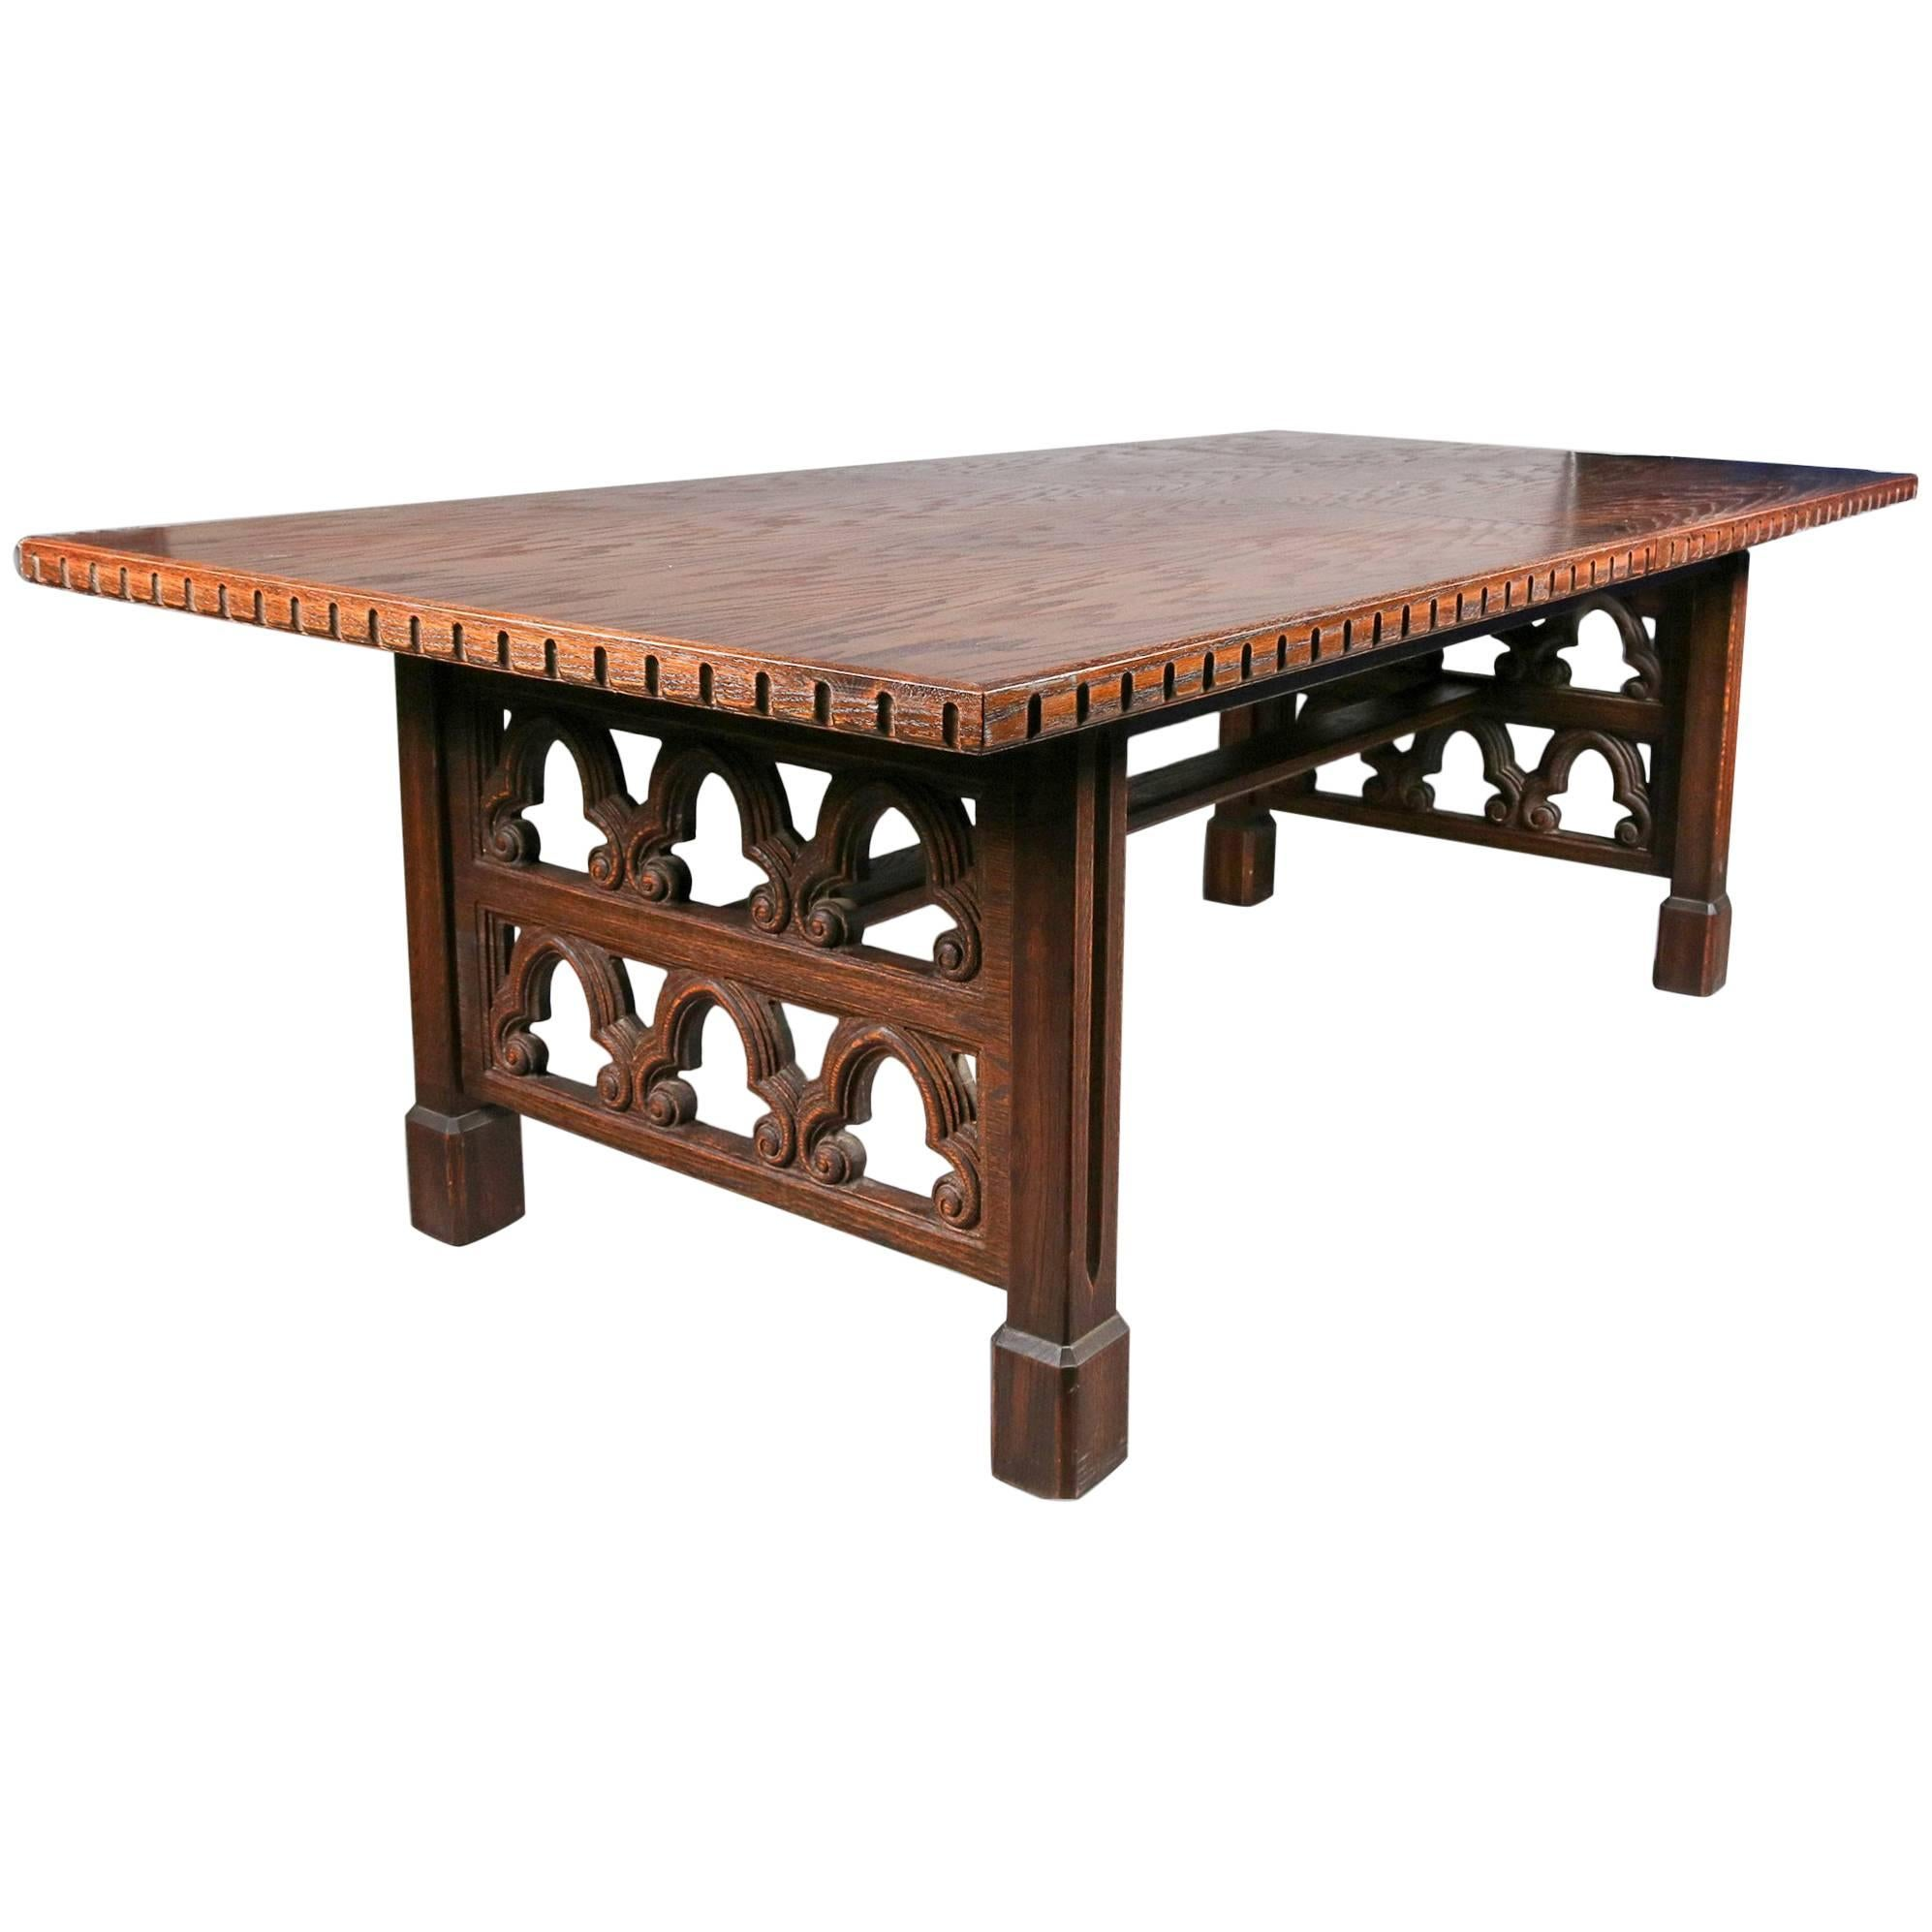 Antique English Carved Walnut Gothic Trestle Table With 2 Leaves, 19th  Century For Sale